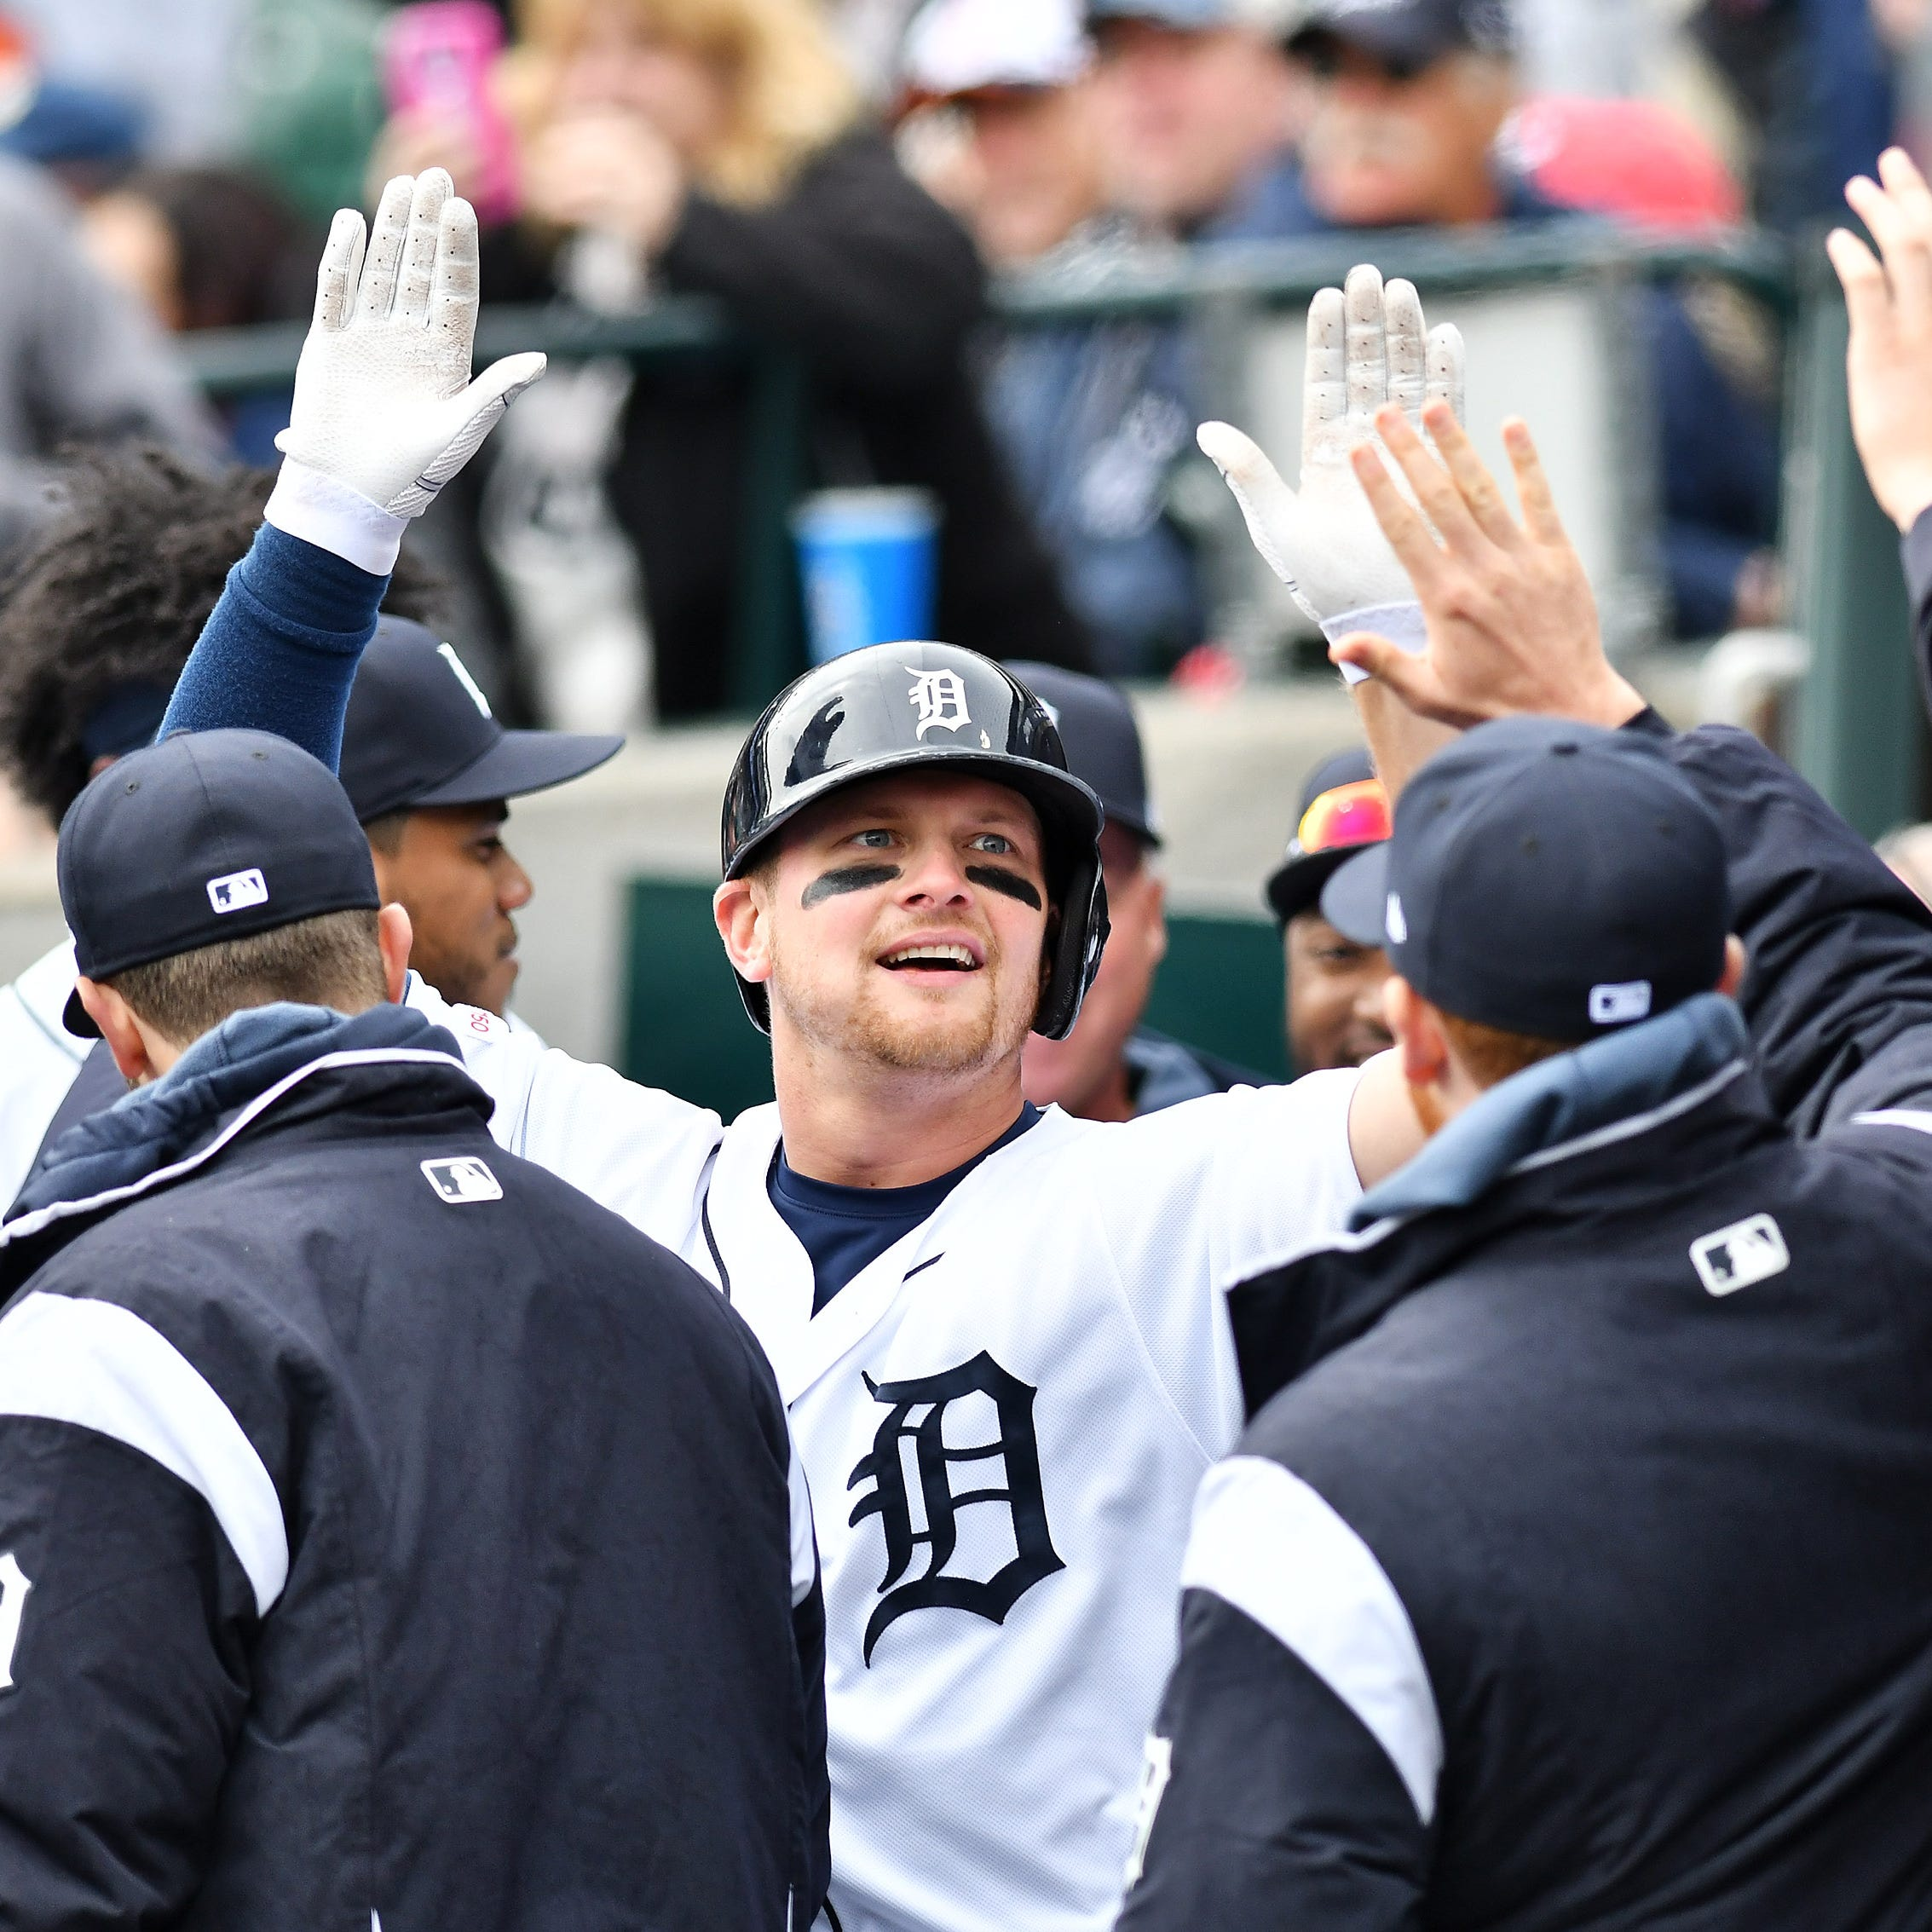 'We don't back down': Tigers find their power against Bauer, get a milestone win for Gardenhire